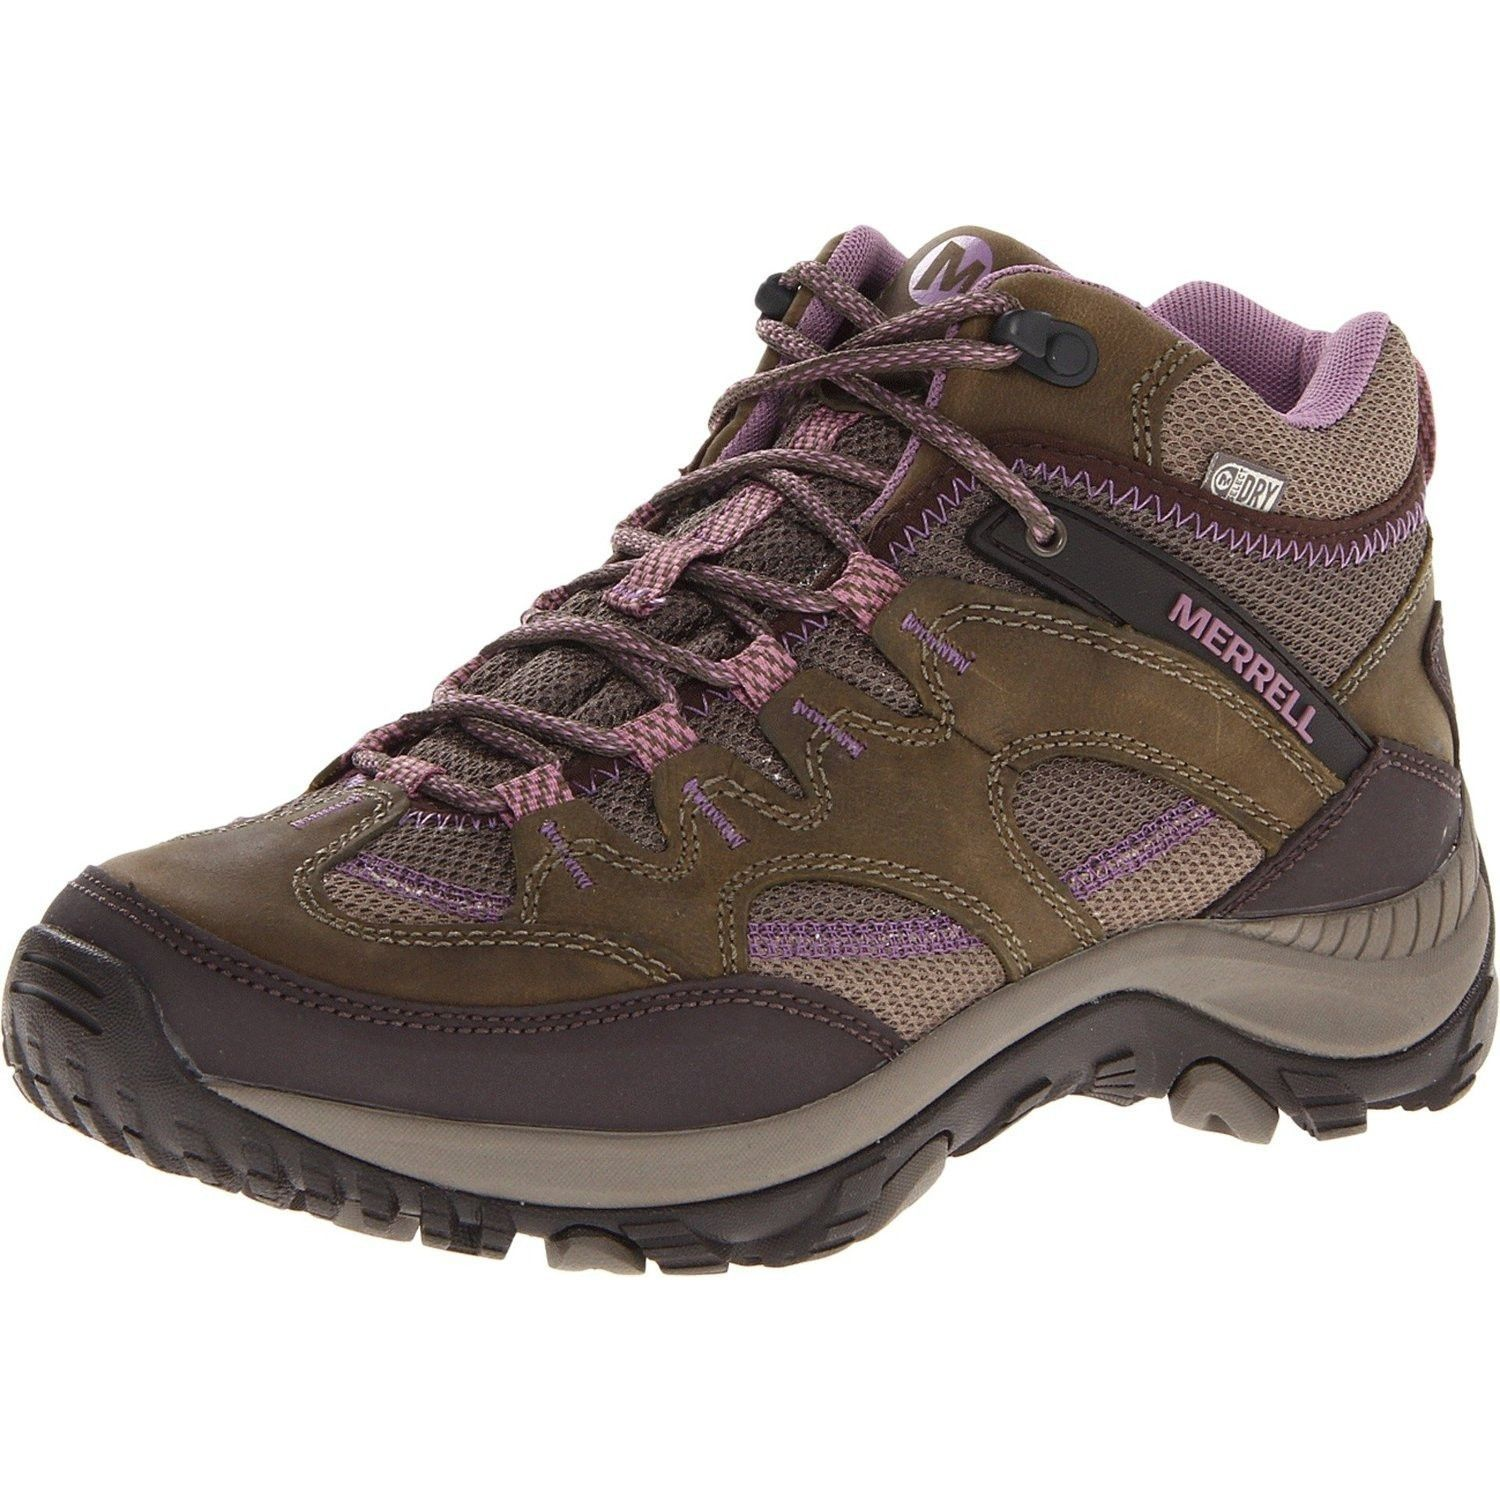 Grivet Outdoors. Lightweight Hiking BootsWaterproof ...